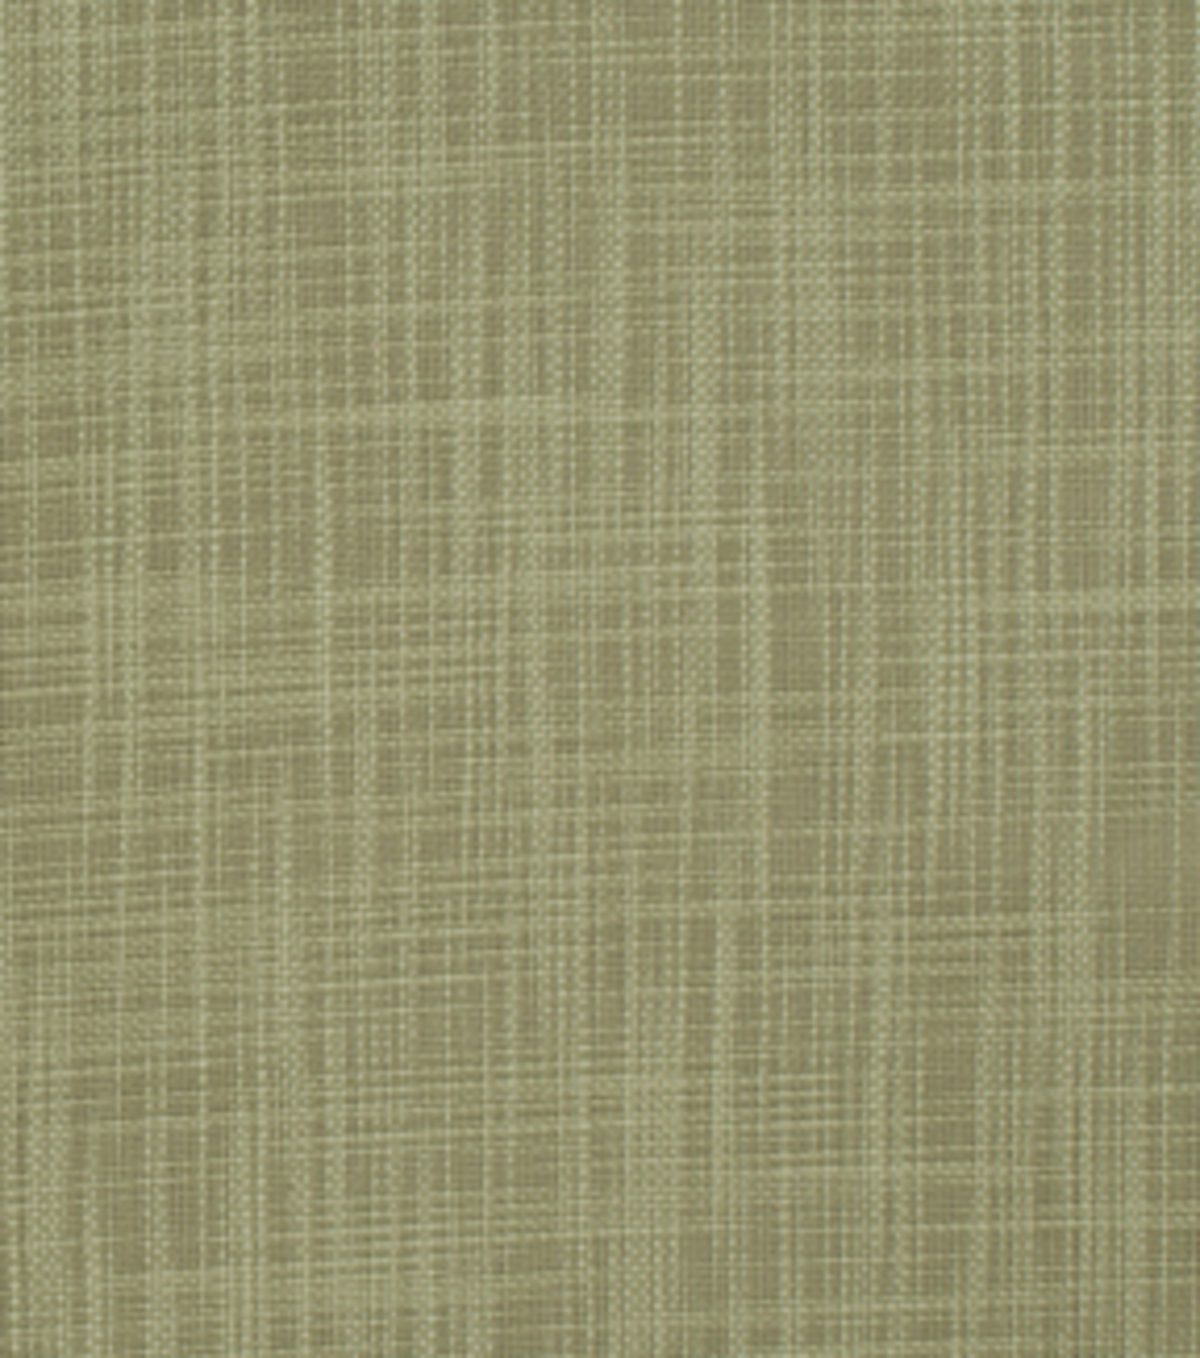 Home Decor 8\u0022x8\u0022 Fabric Swatch-Eaton Square Bankroll Sage